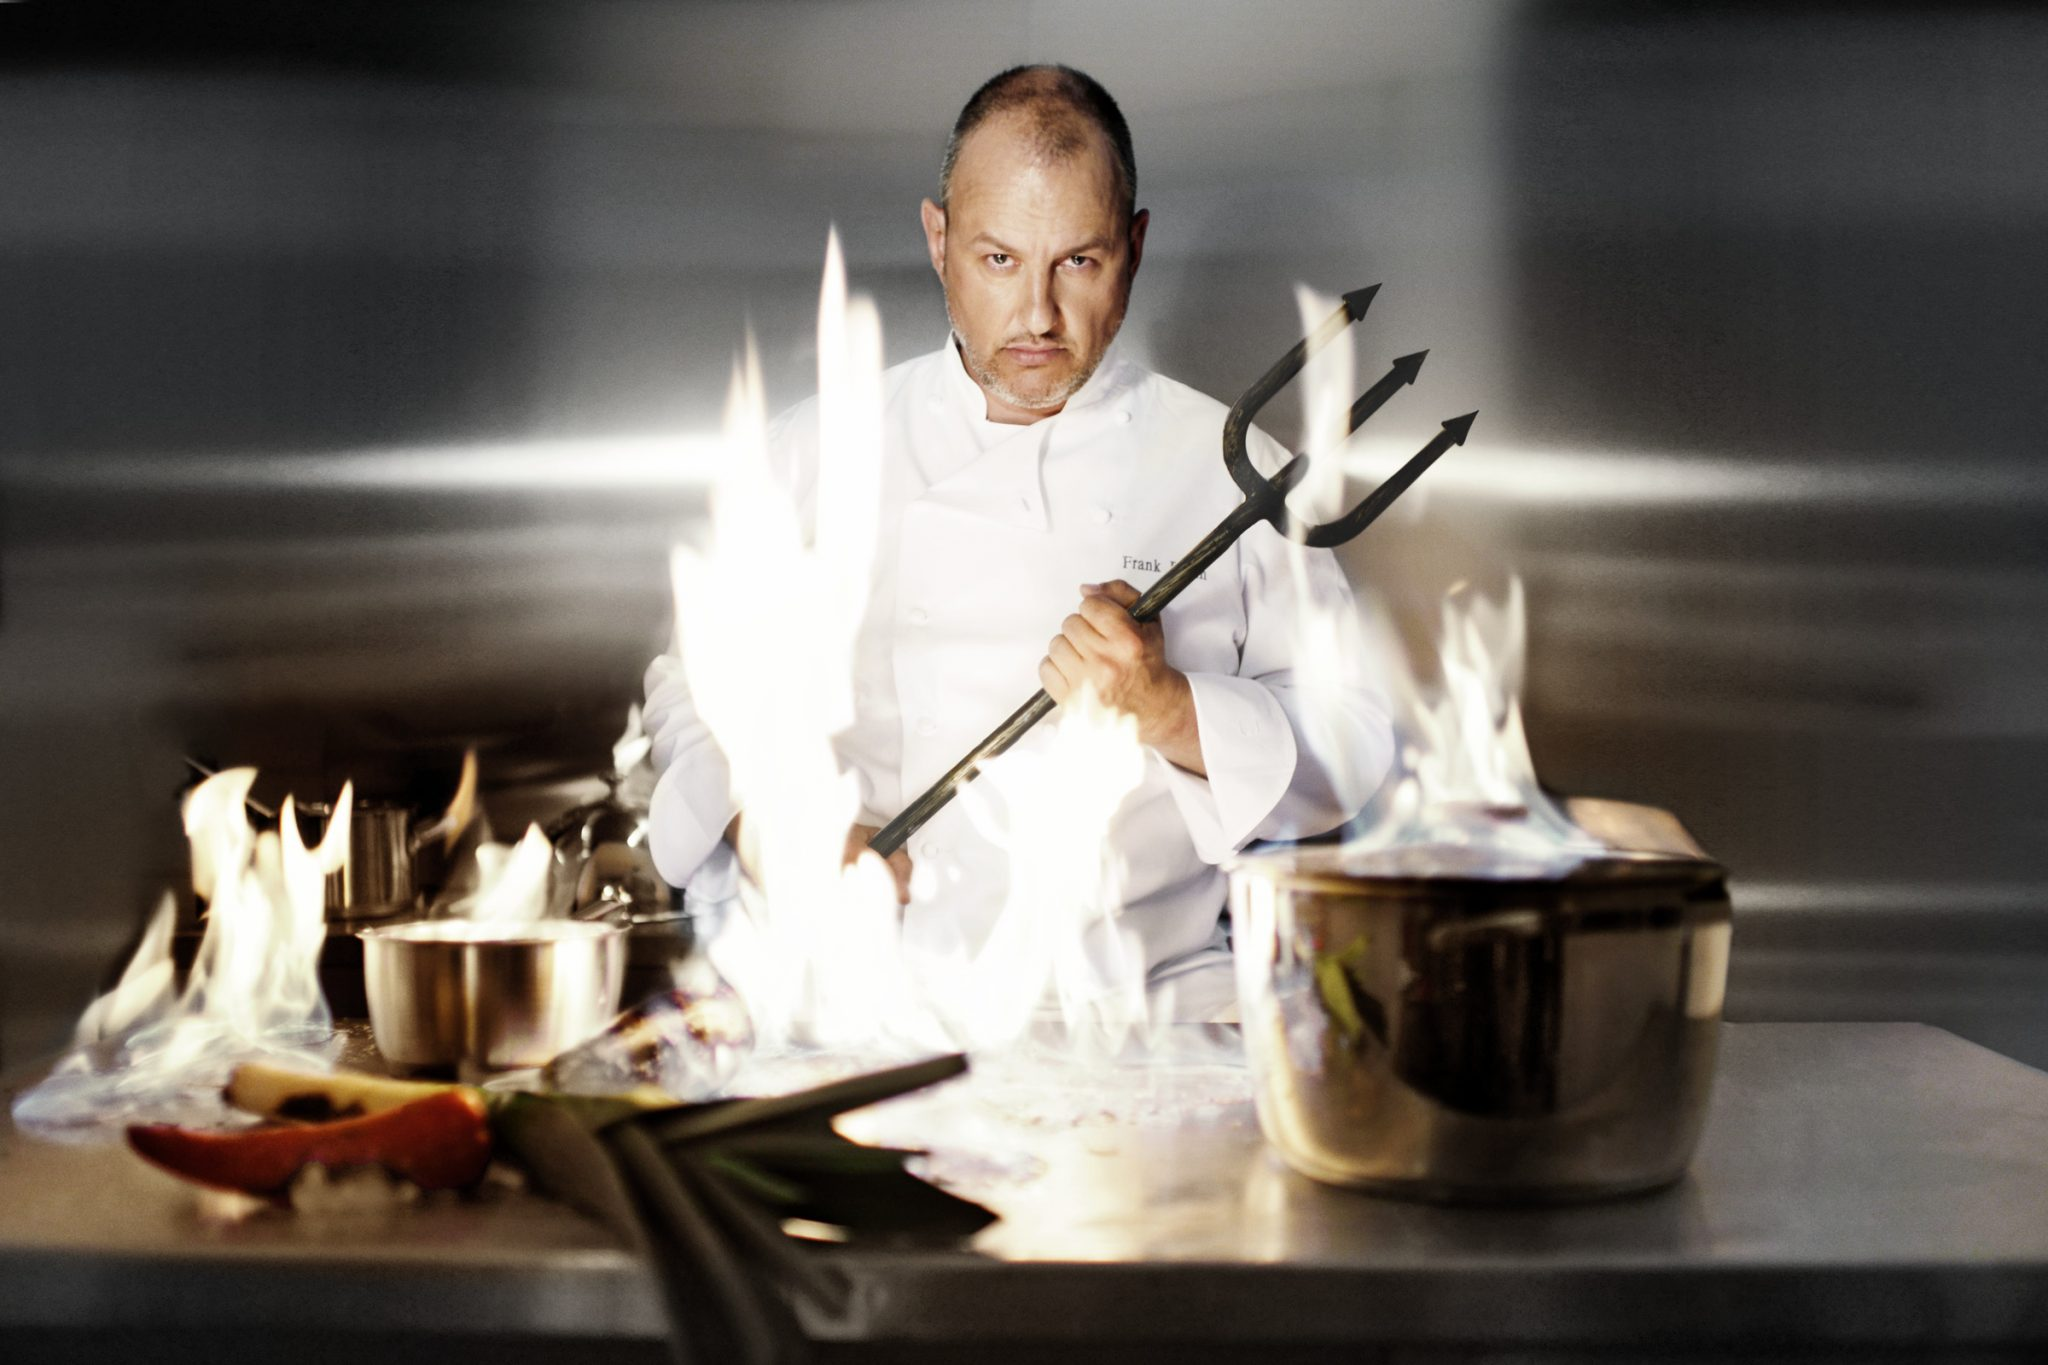 hell's kitchen opens in germany, italy | tbi vision